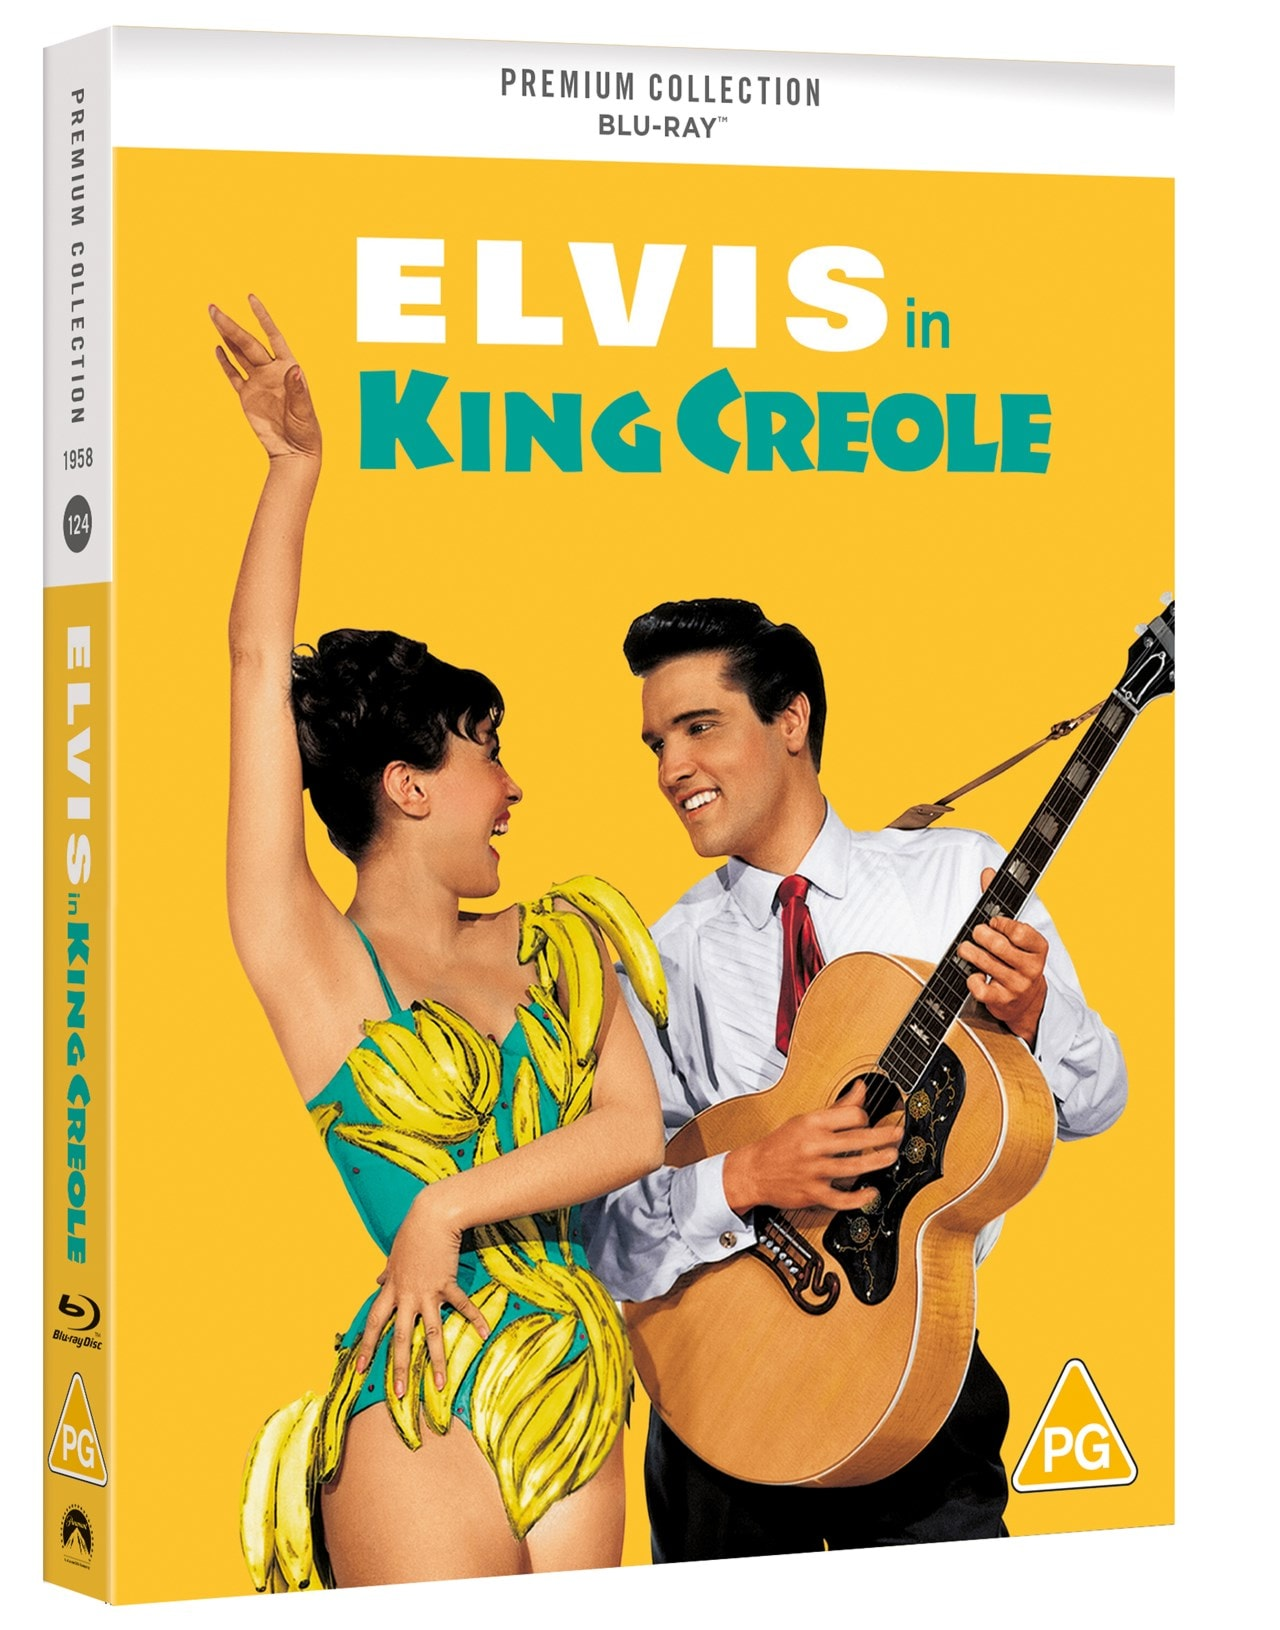 King Creole (hmv Exclusive) - The Premium Collection - 3